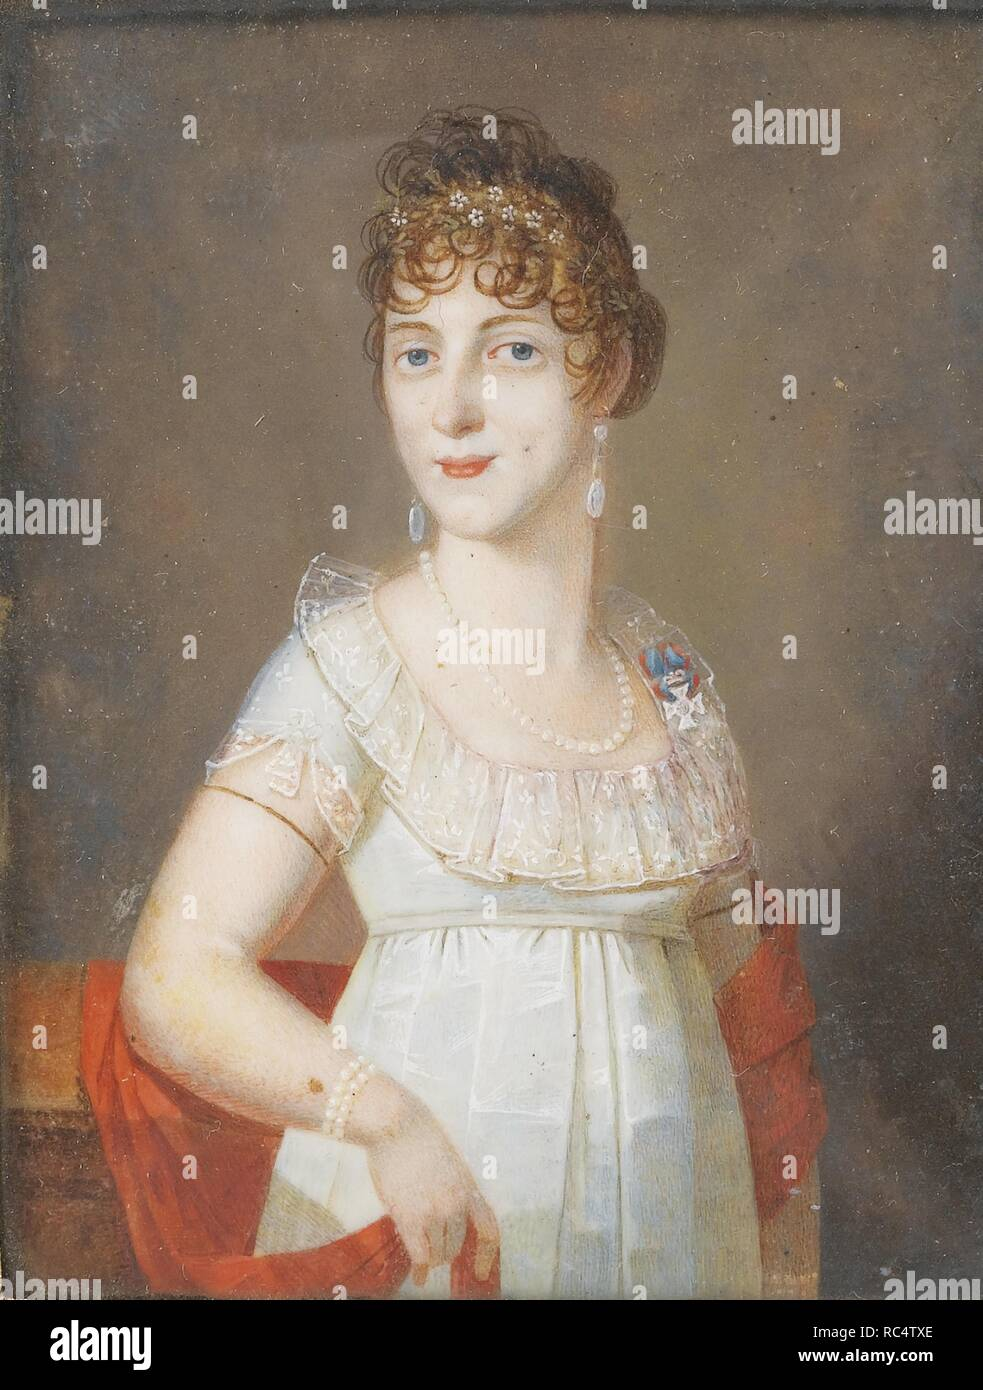 Duchess Maria Elisabeth in Bavaria (1784-1849), Princess of Wagram. Museum: PRIVATE COLLECTION. Author: ANONYMOUS. - Stock Image